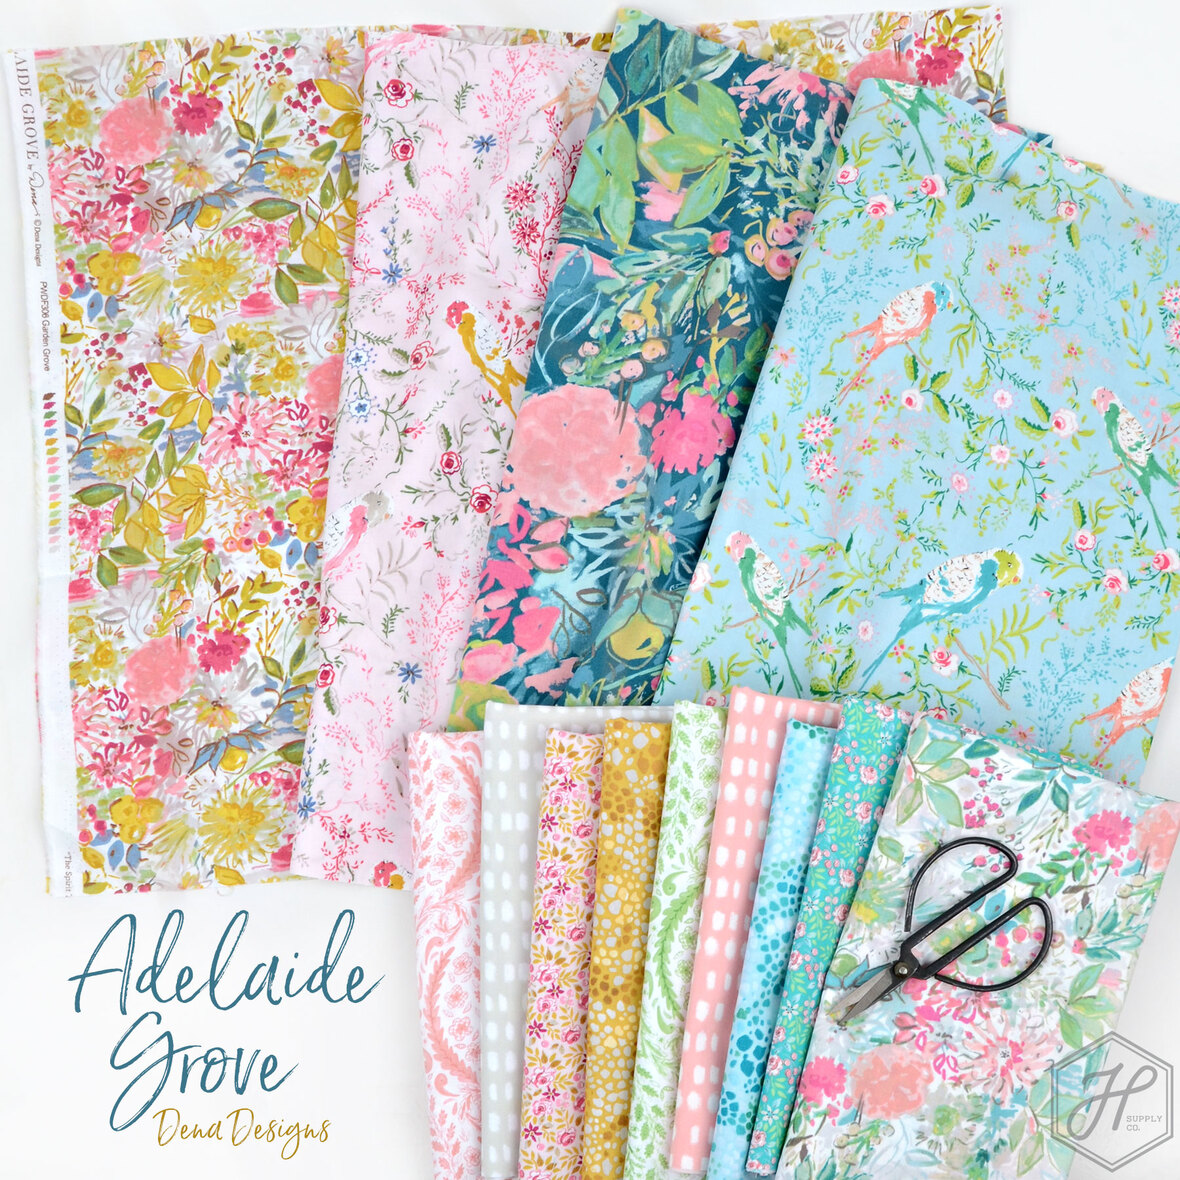 Adelaide-Grove-Fabric-Dena-Design-for-Free-Spirit-at-Hawthorne-Supply-Co